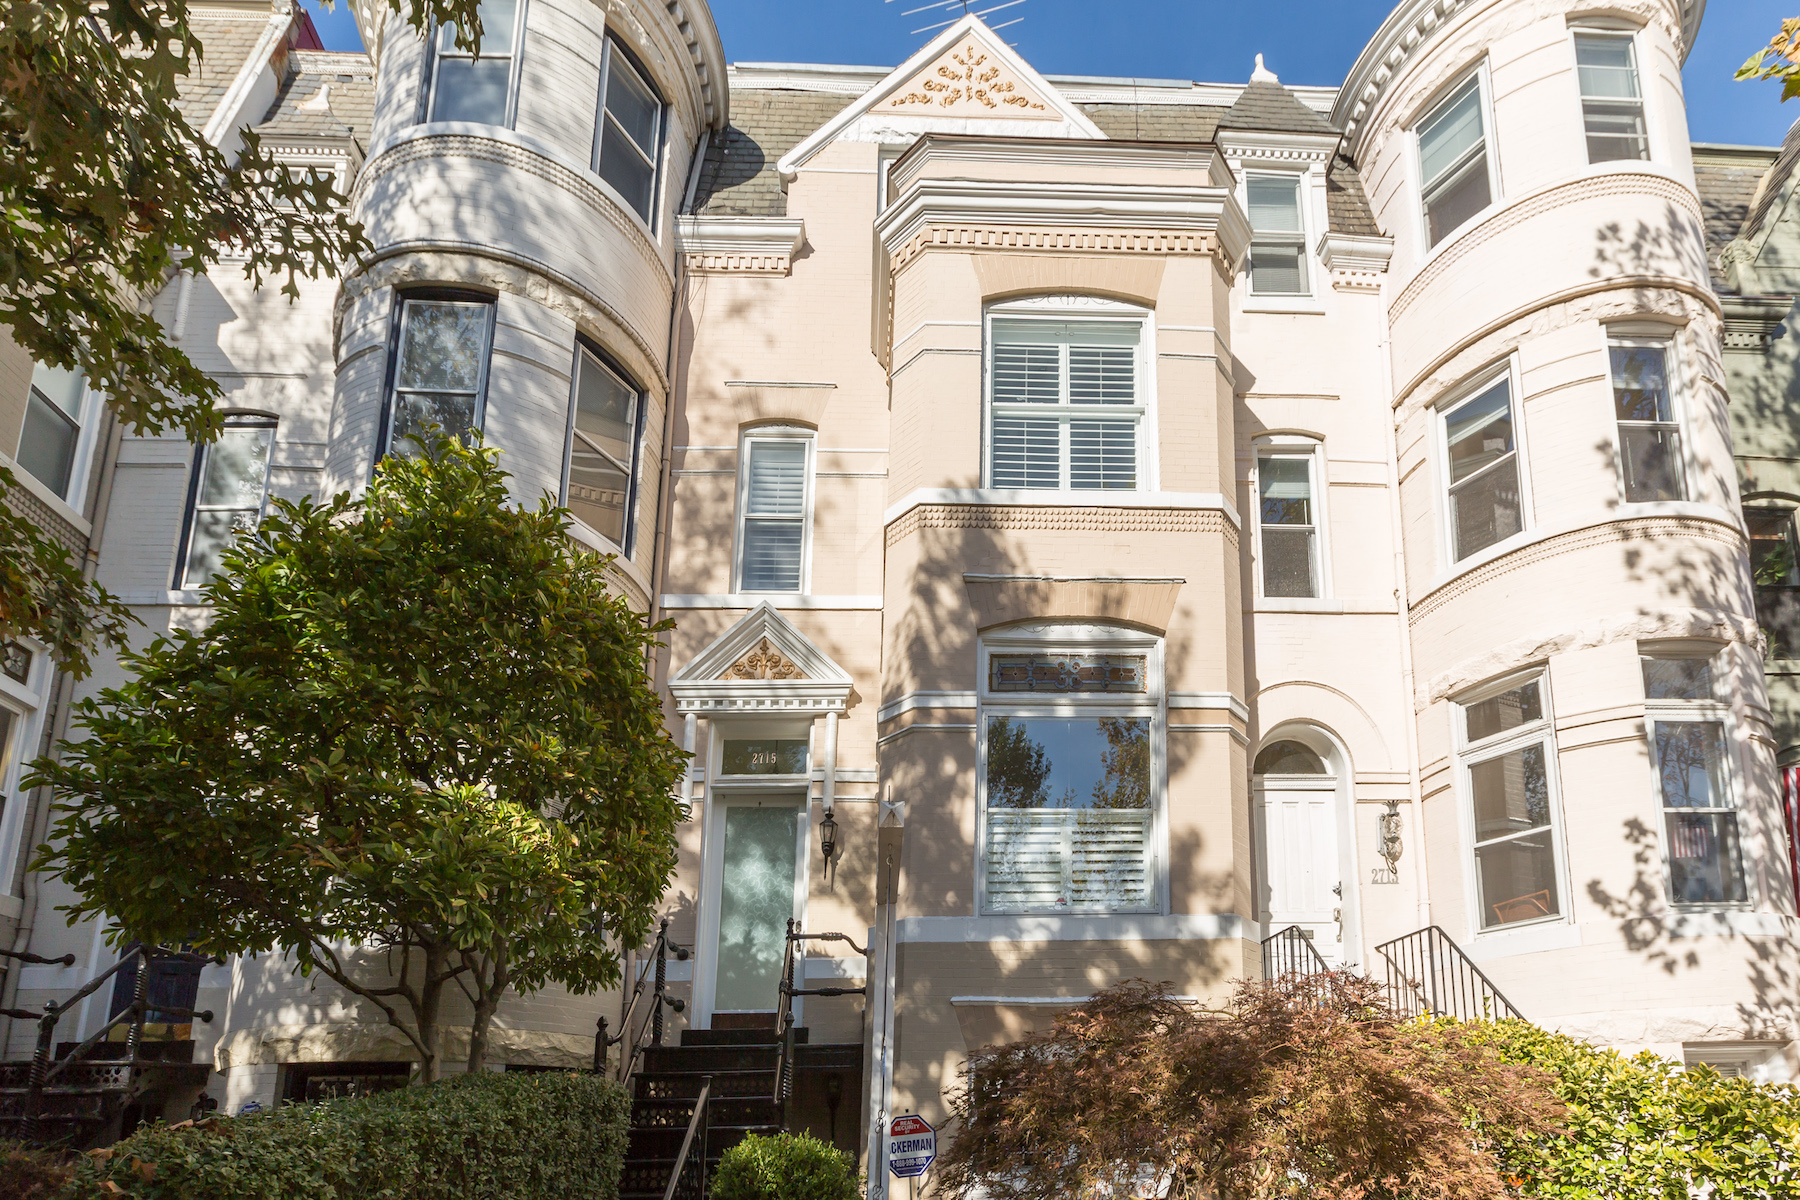 Townhouse for Sale at 2715 P Street Nw, Washington Washington, District Of Columbia 20007 United States